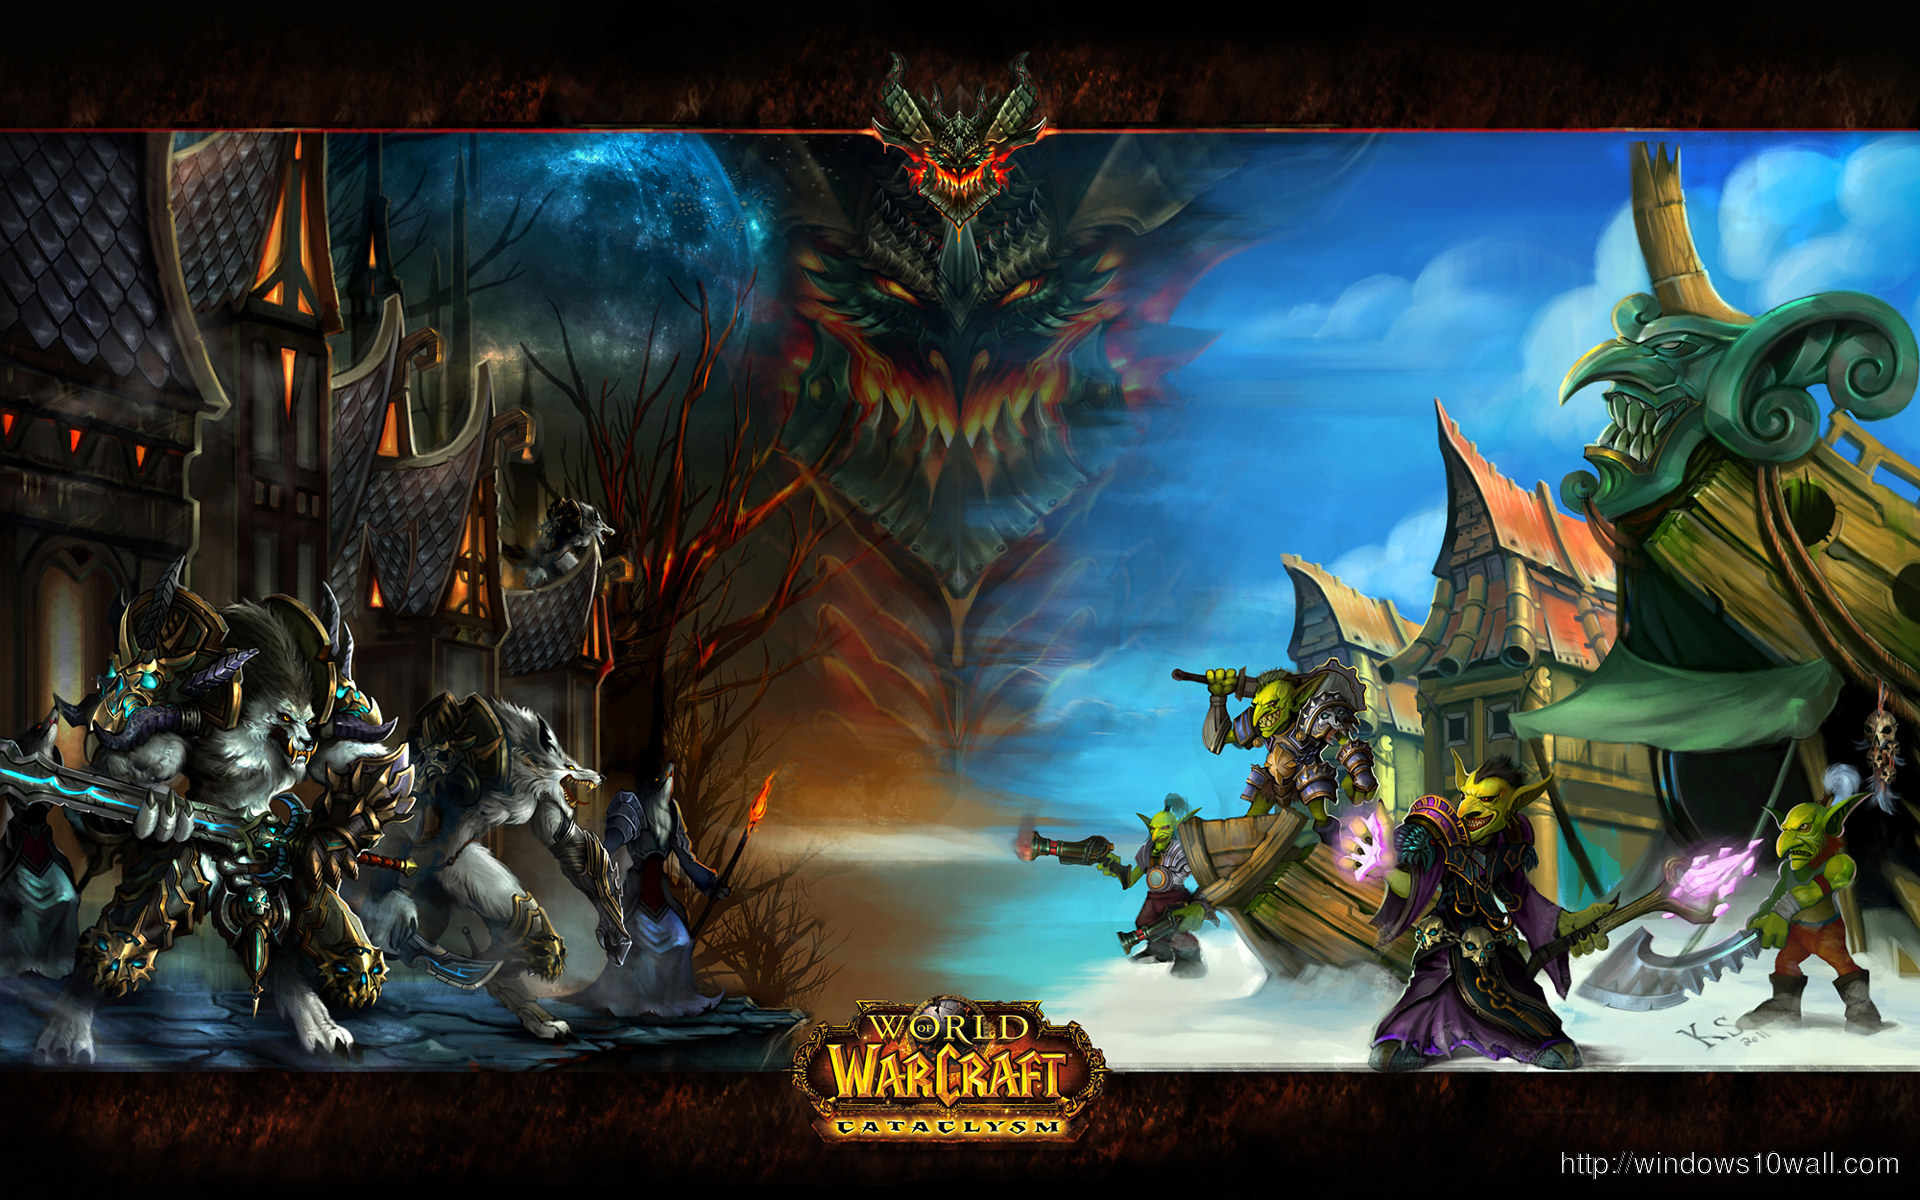 World Of Warcraft Game Wallpaper Windows 10 Wallpapers